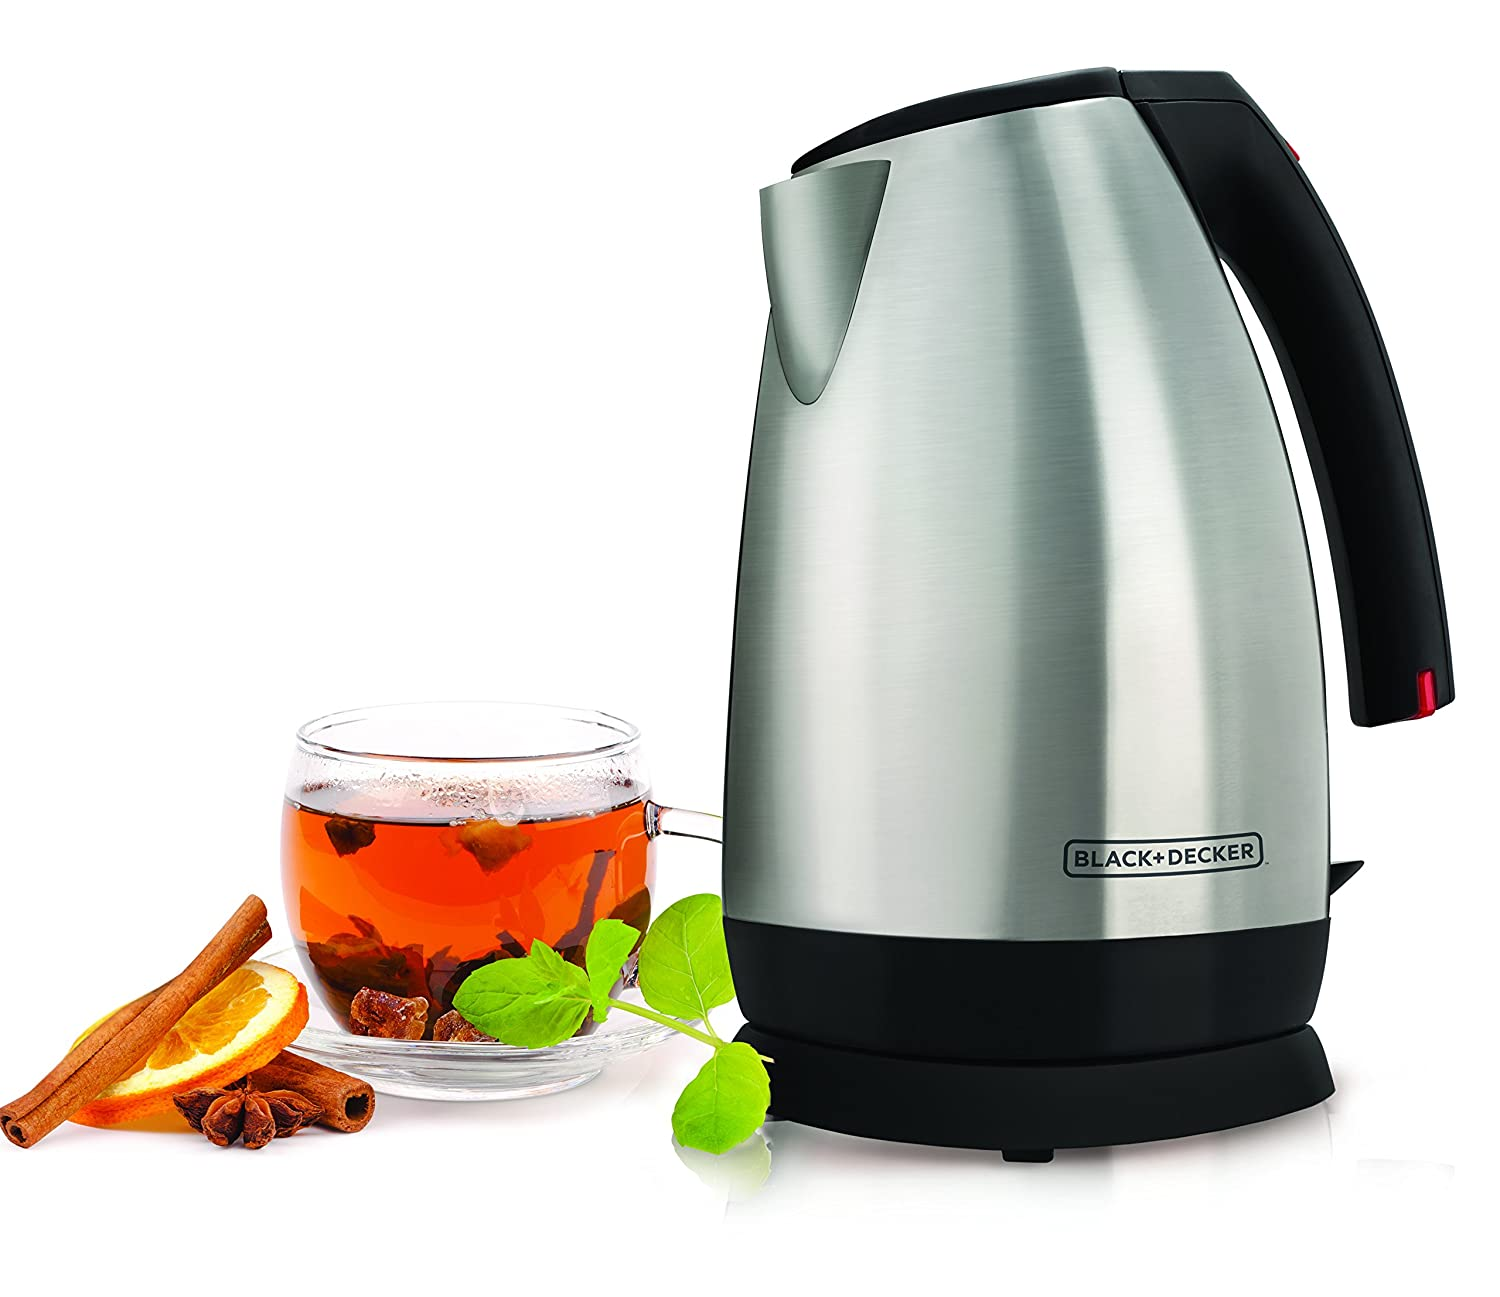 Black & Decker JKC650 Cordless Electric Kettle, Stainless-Steel